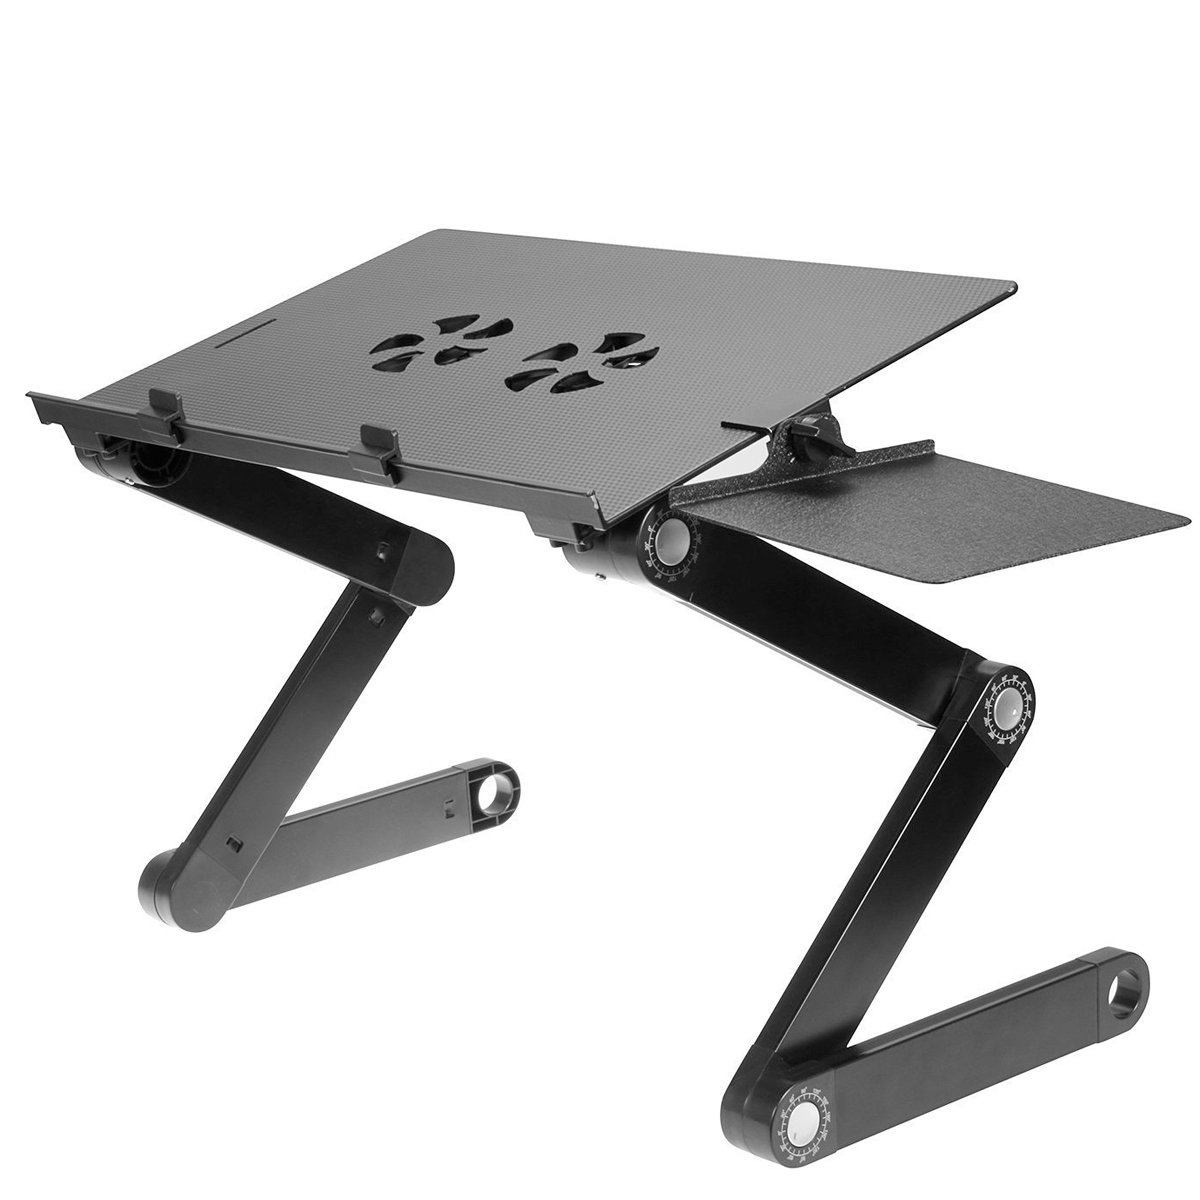 Vented Laptop Stand Riser & Computer Desk - Multifunctional Adjustable Portable Table, Bed Tray with Ergonomic Dual Layer Tabletop Design | Black - Aluminum